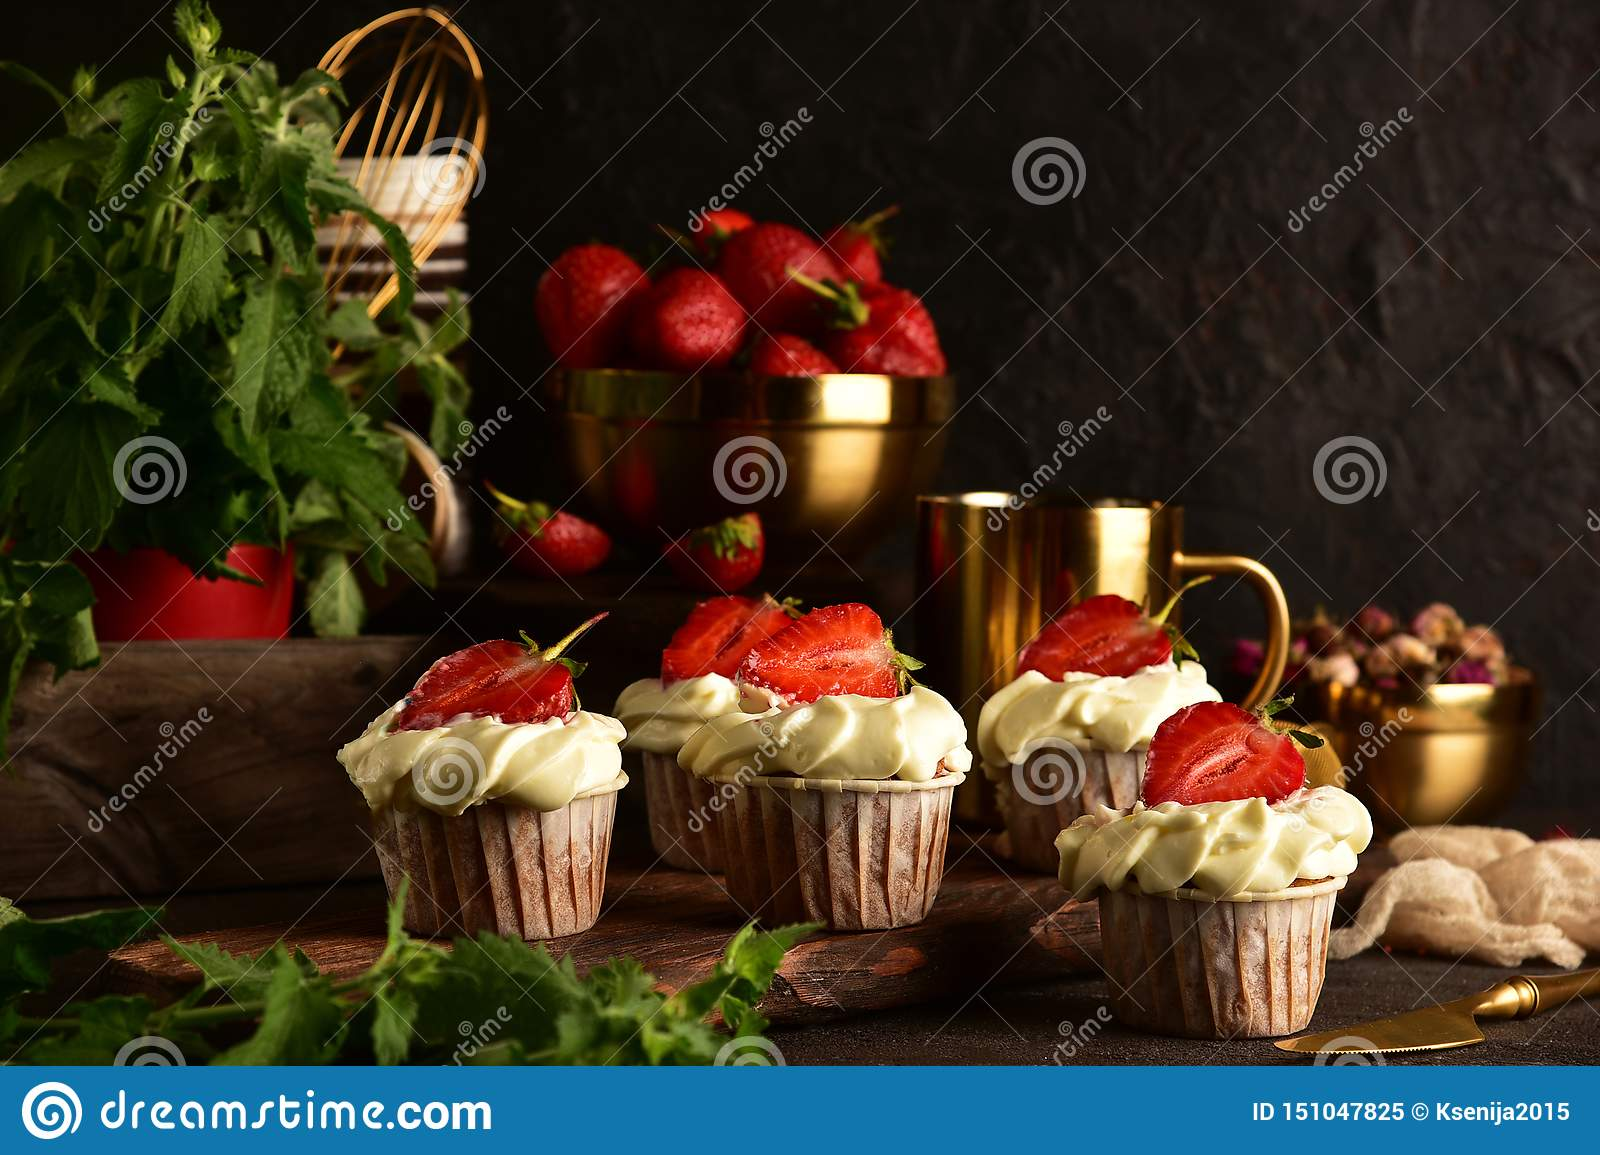 Cupcakes with strawberries on a dark background. Still life